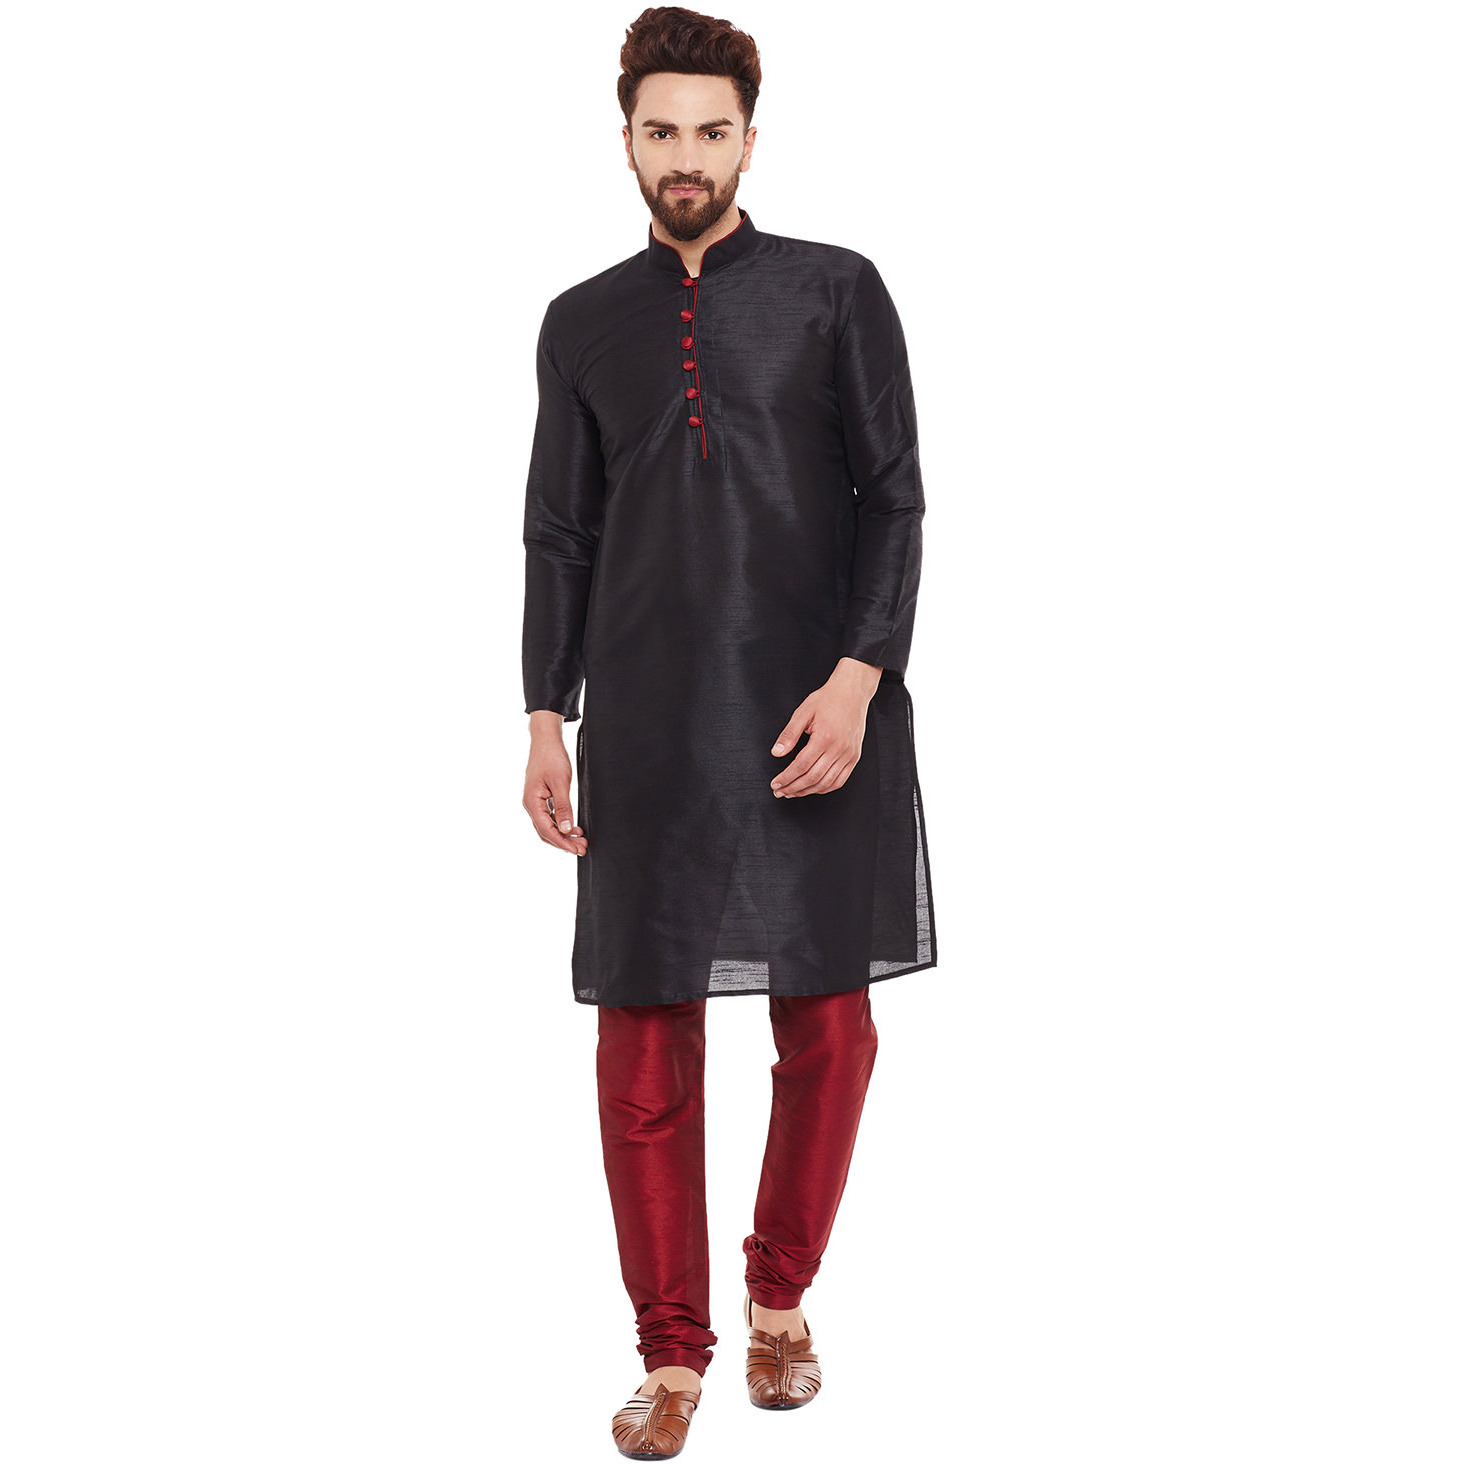 Mens Dupion Silk Black  Solid Designer Kurta Churidaar Set Long Sleeve Ban collar Regular Fit